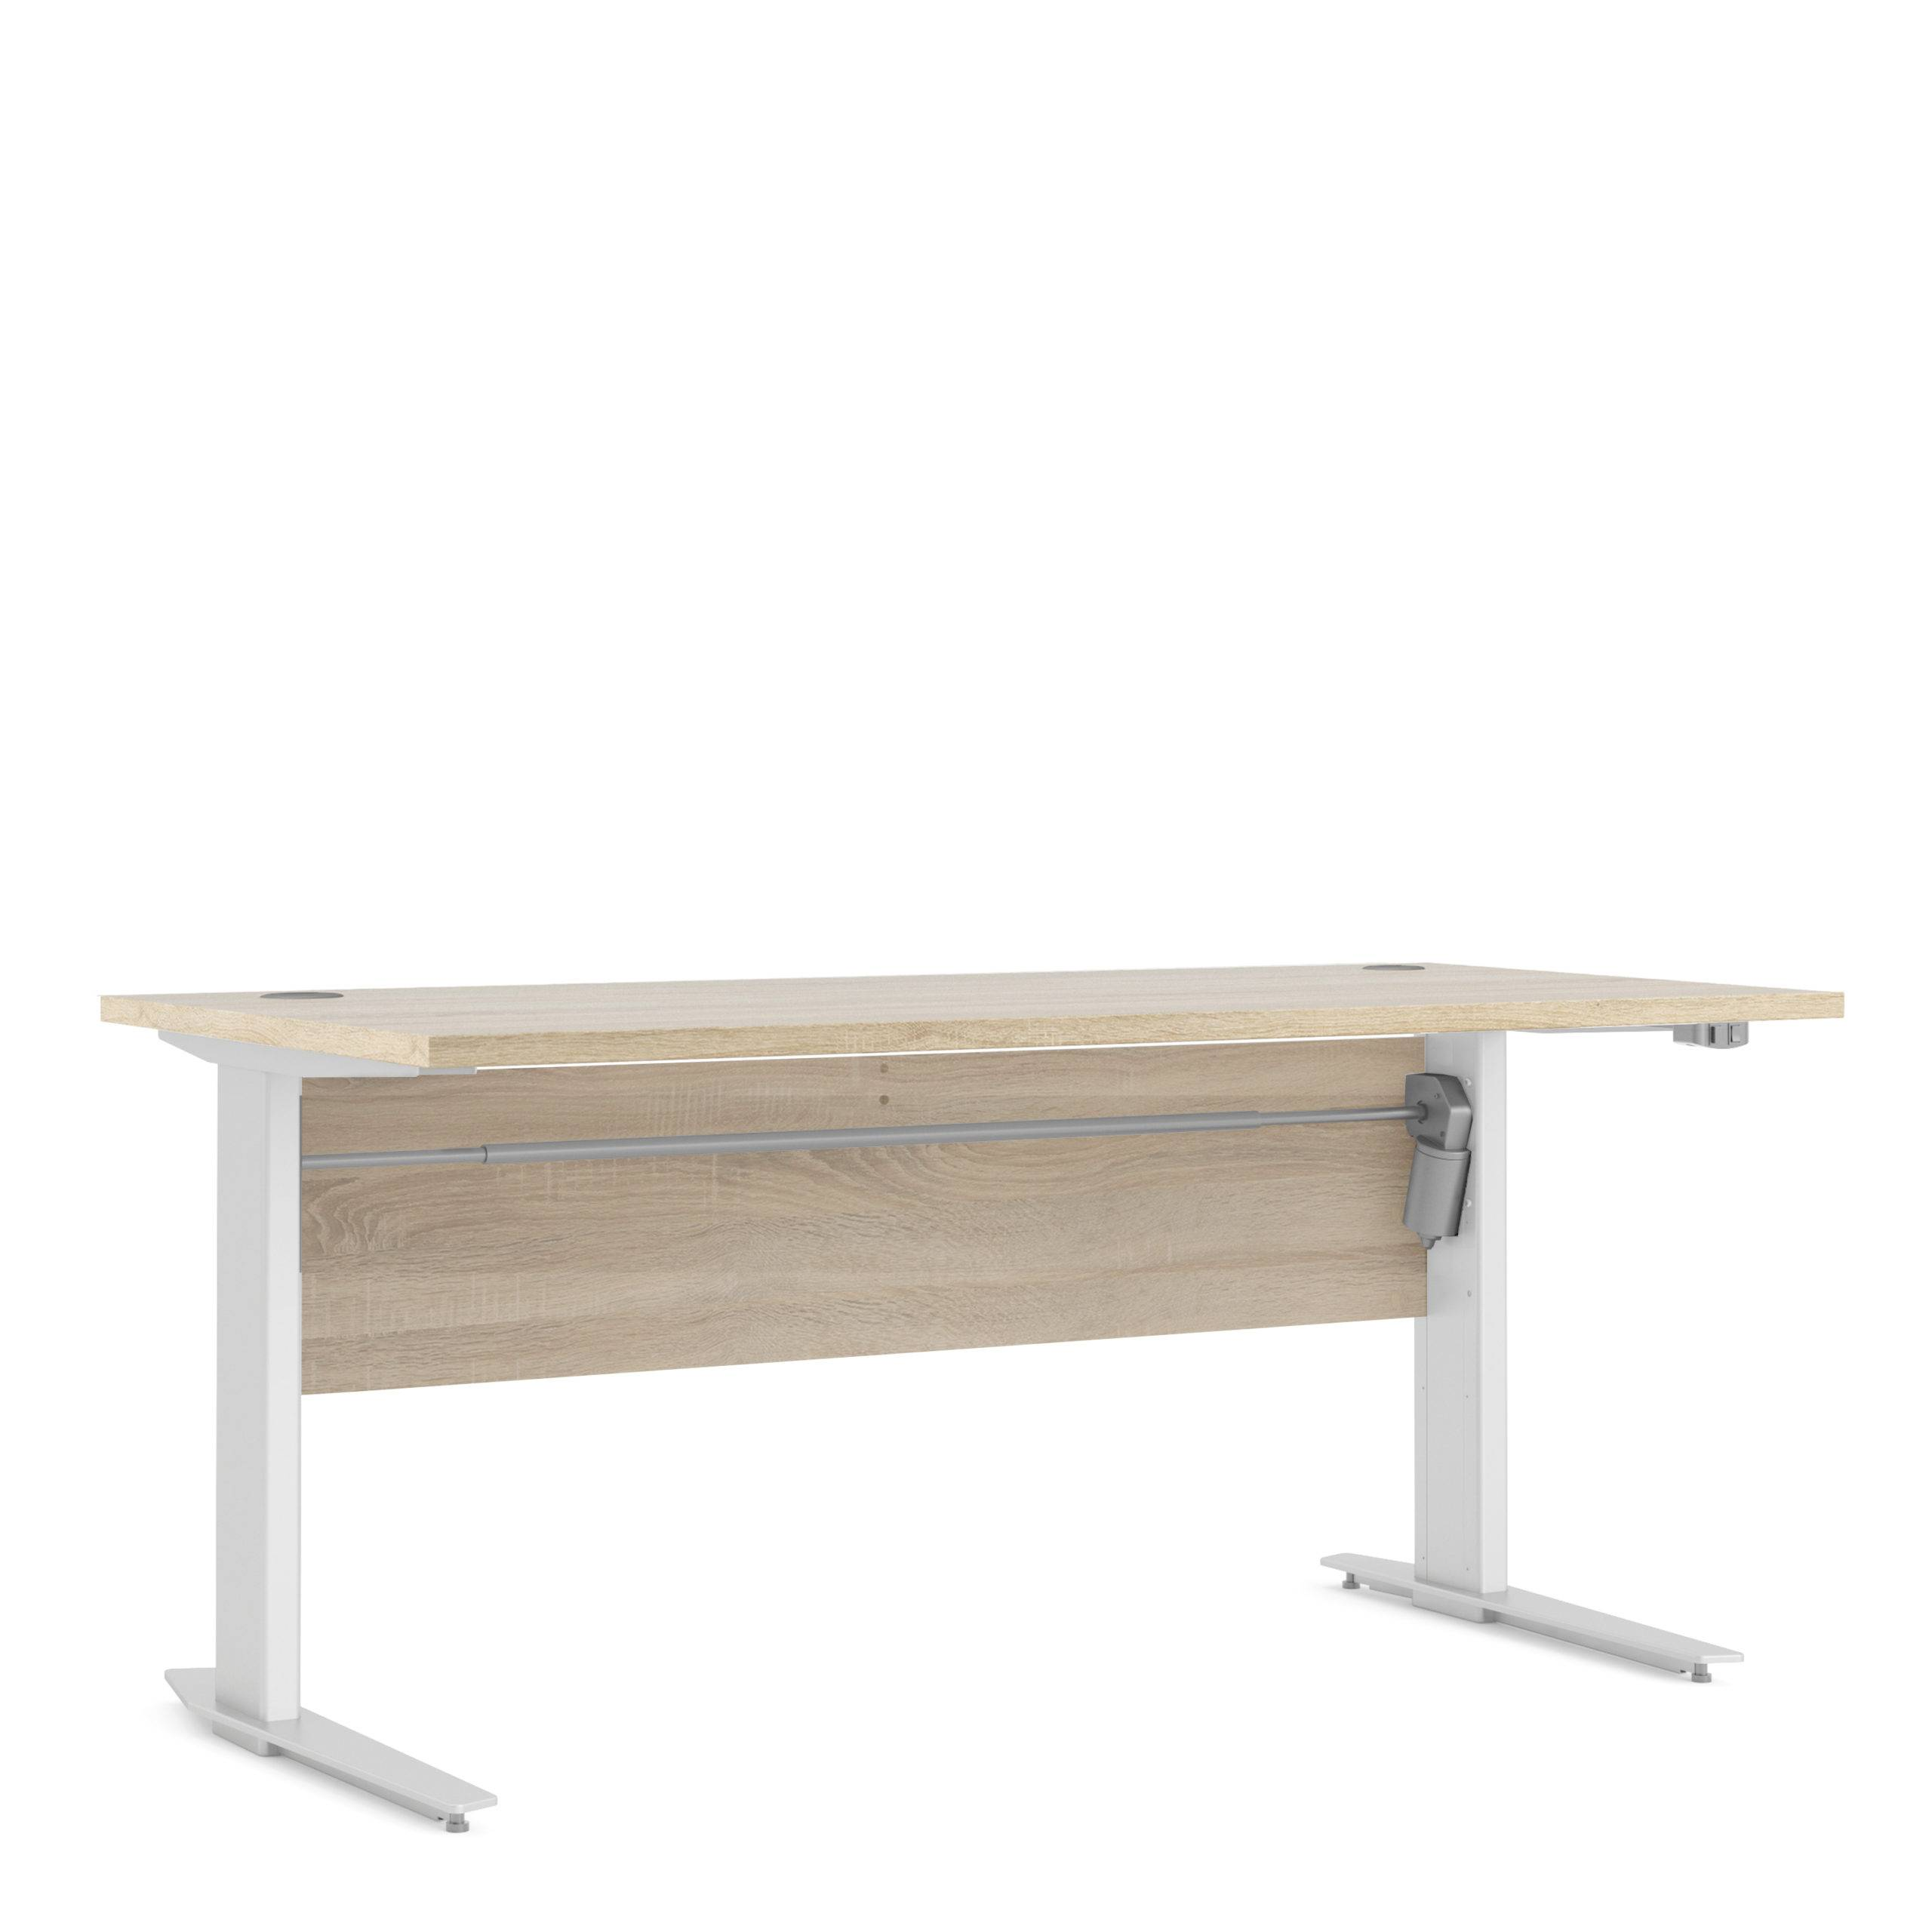 Kansas Desk 150 cm in Oak   Height Adjustable Legs   Electric Control in White   Self Assembly